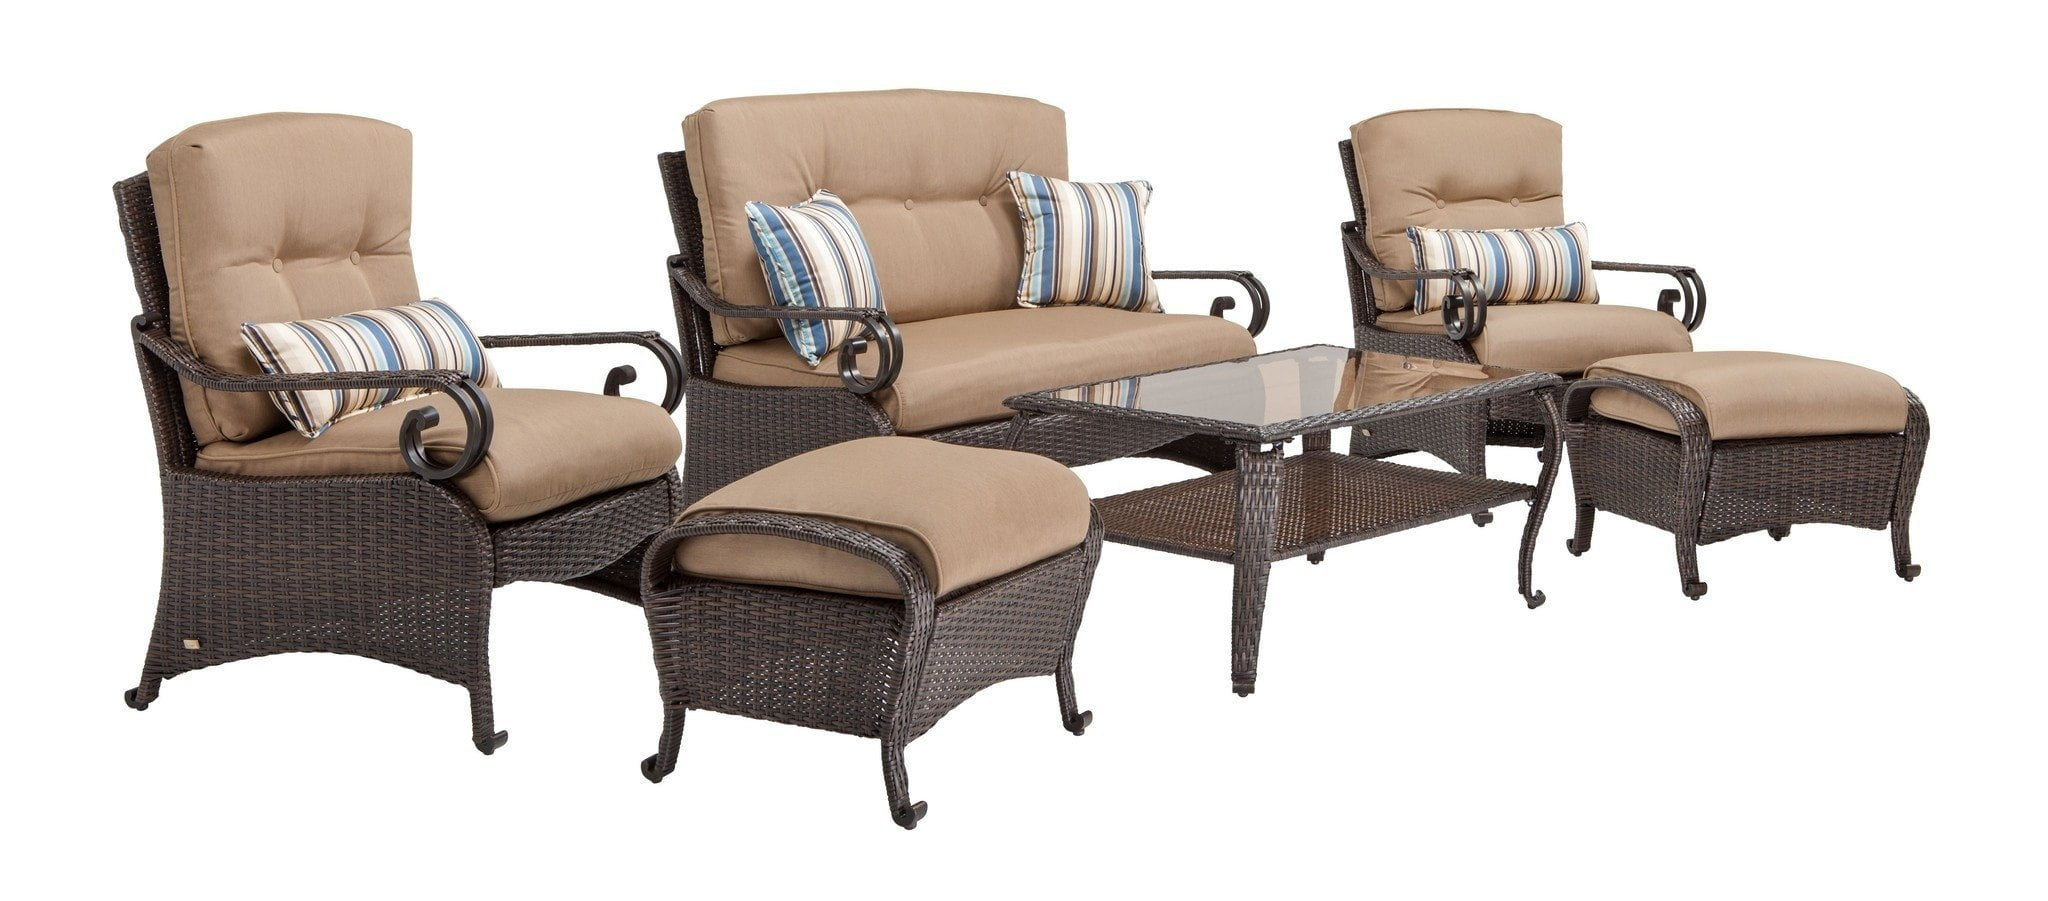 Seating   Lake Como Deep Seating Patio Furniture Set (Khaki Tan, 6 Piece)